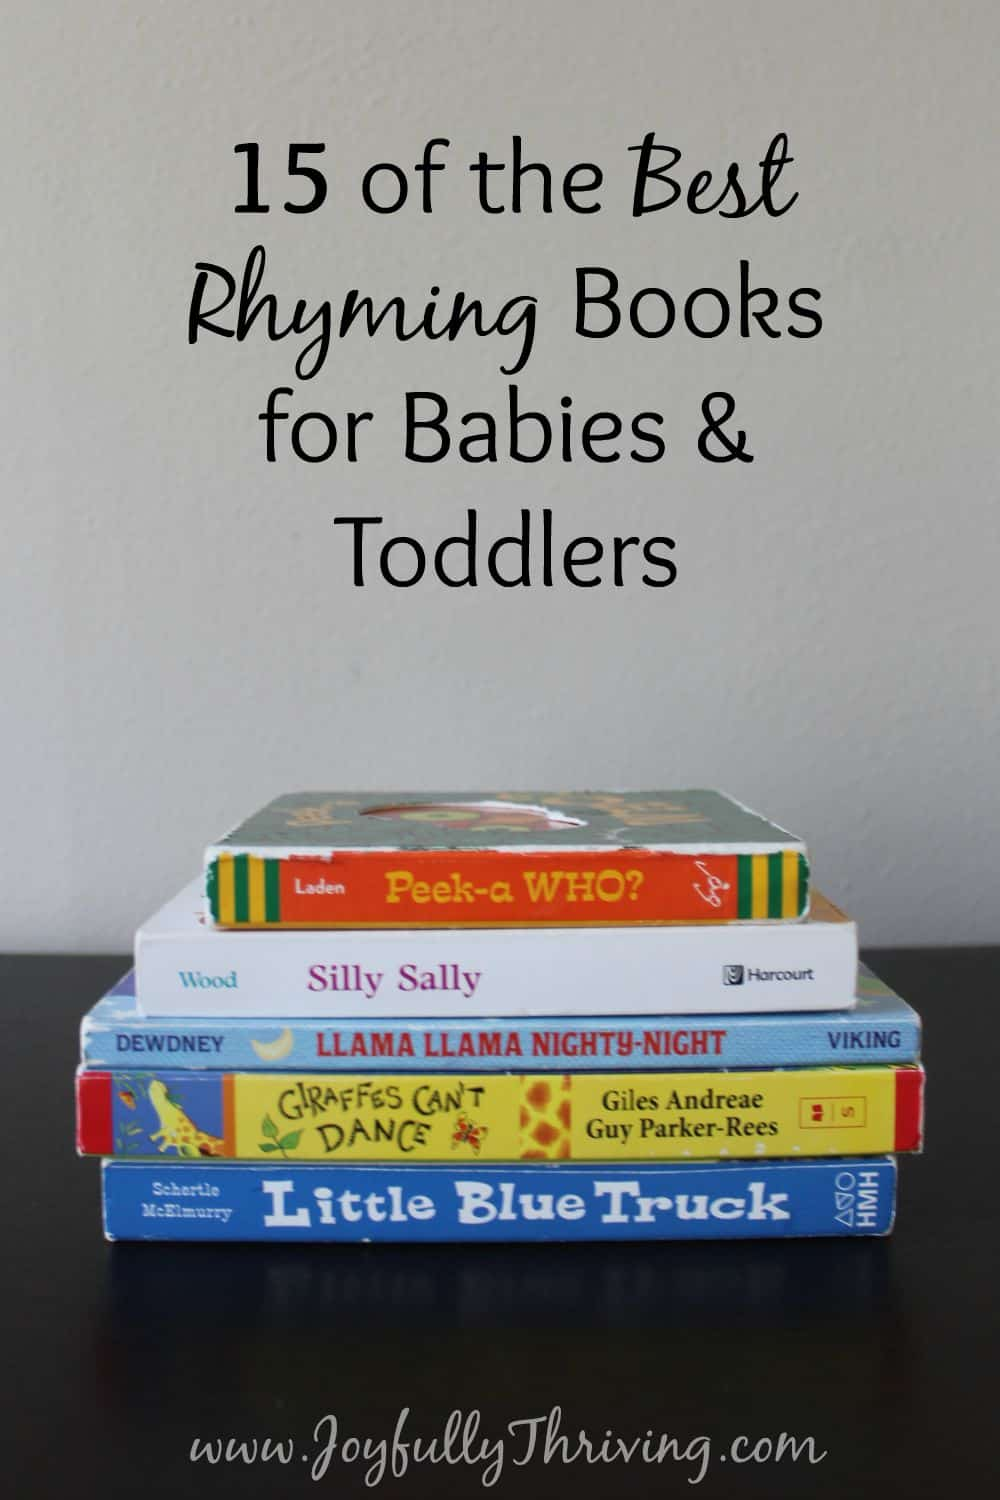 Best Rhyming Board Books for Babies & Toddlers